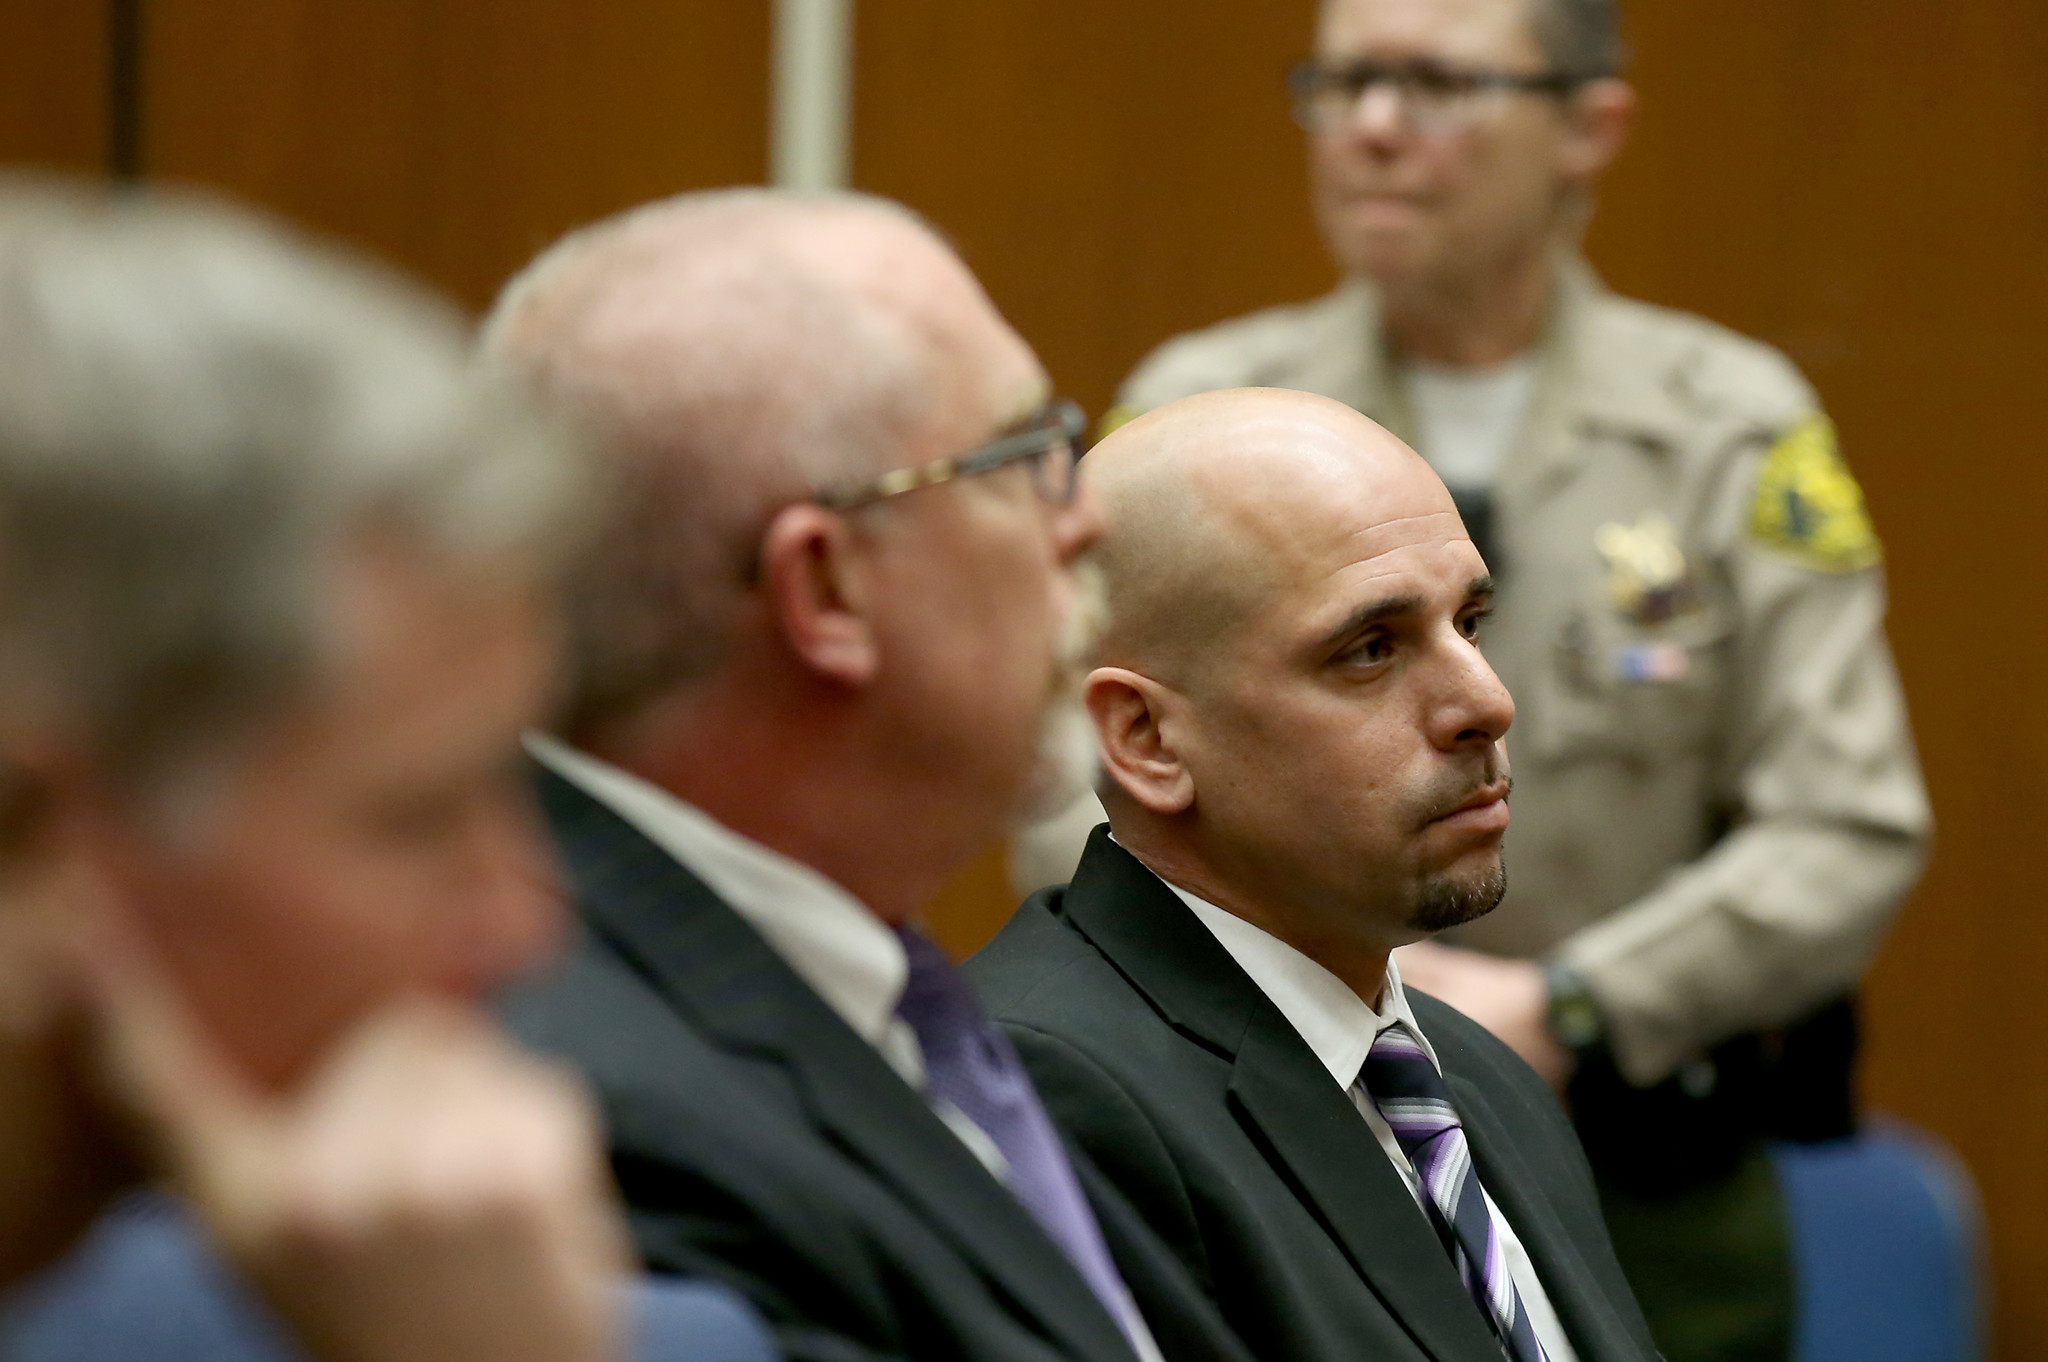 Raymond Lee Jennings, right, attends a hearing in Los Angeles.